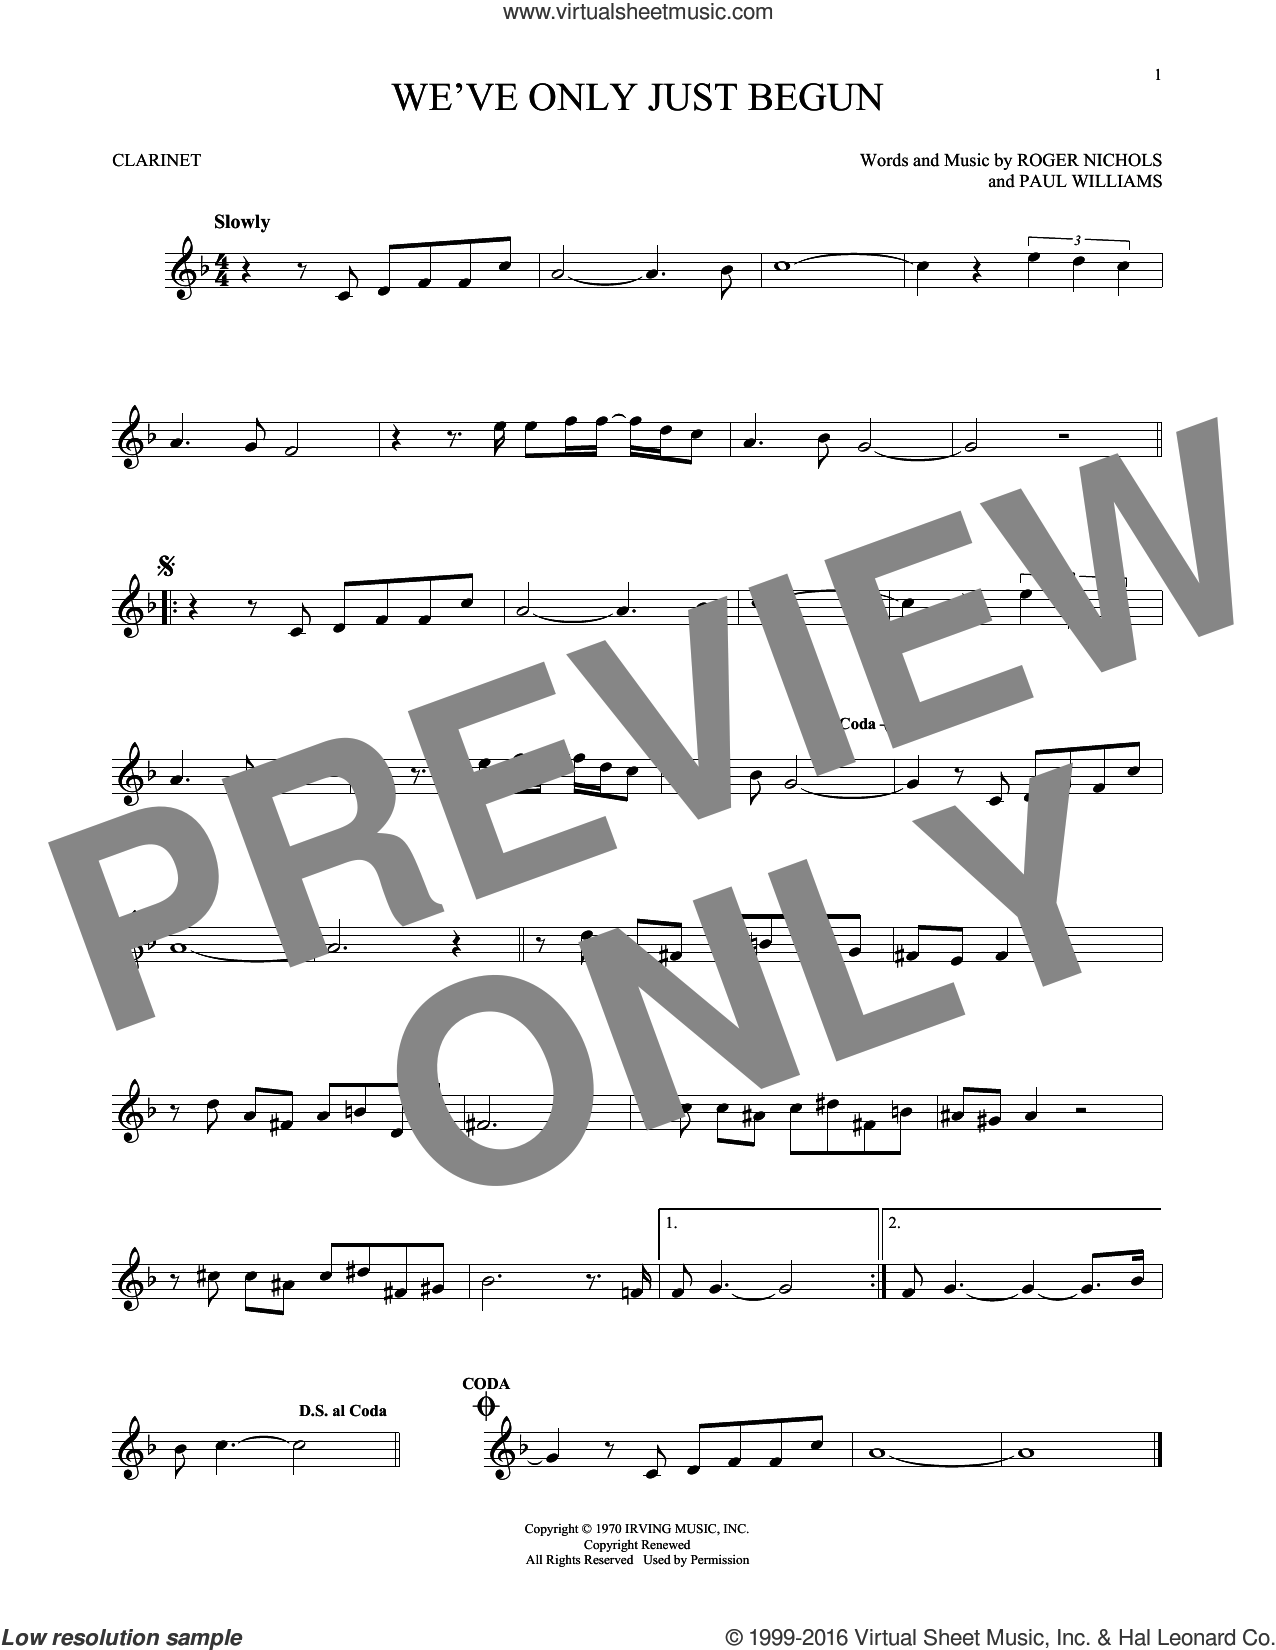 We've Only Just Begun sheet music for clarinet solo by Roger Nichols